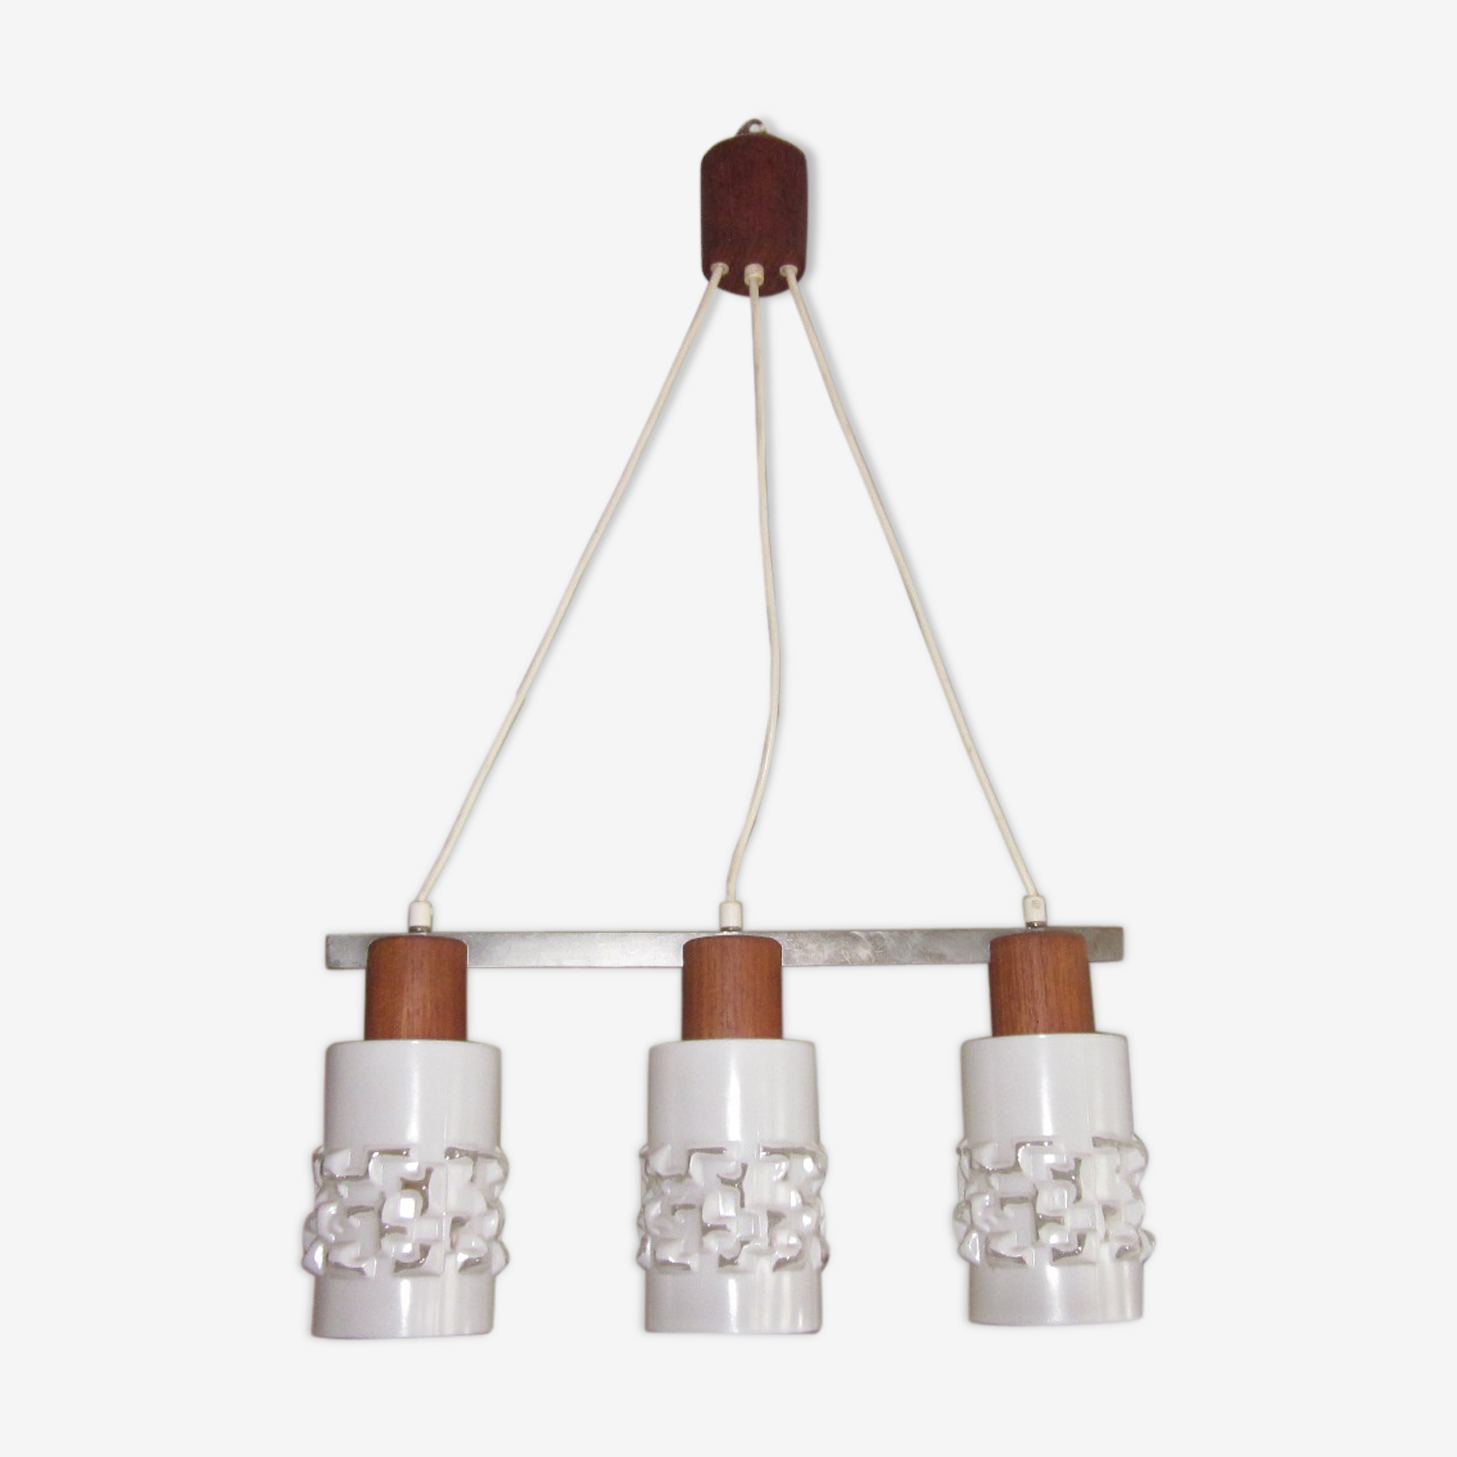 Suspension scandinave en teck et globe en verre